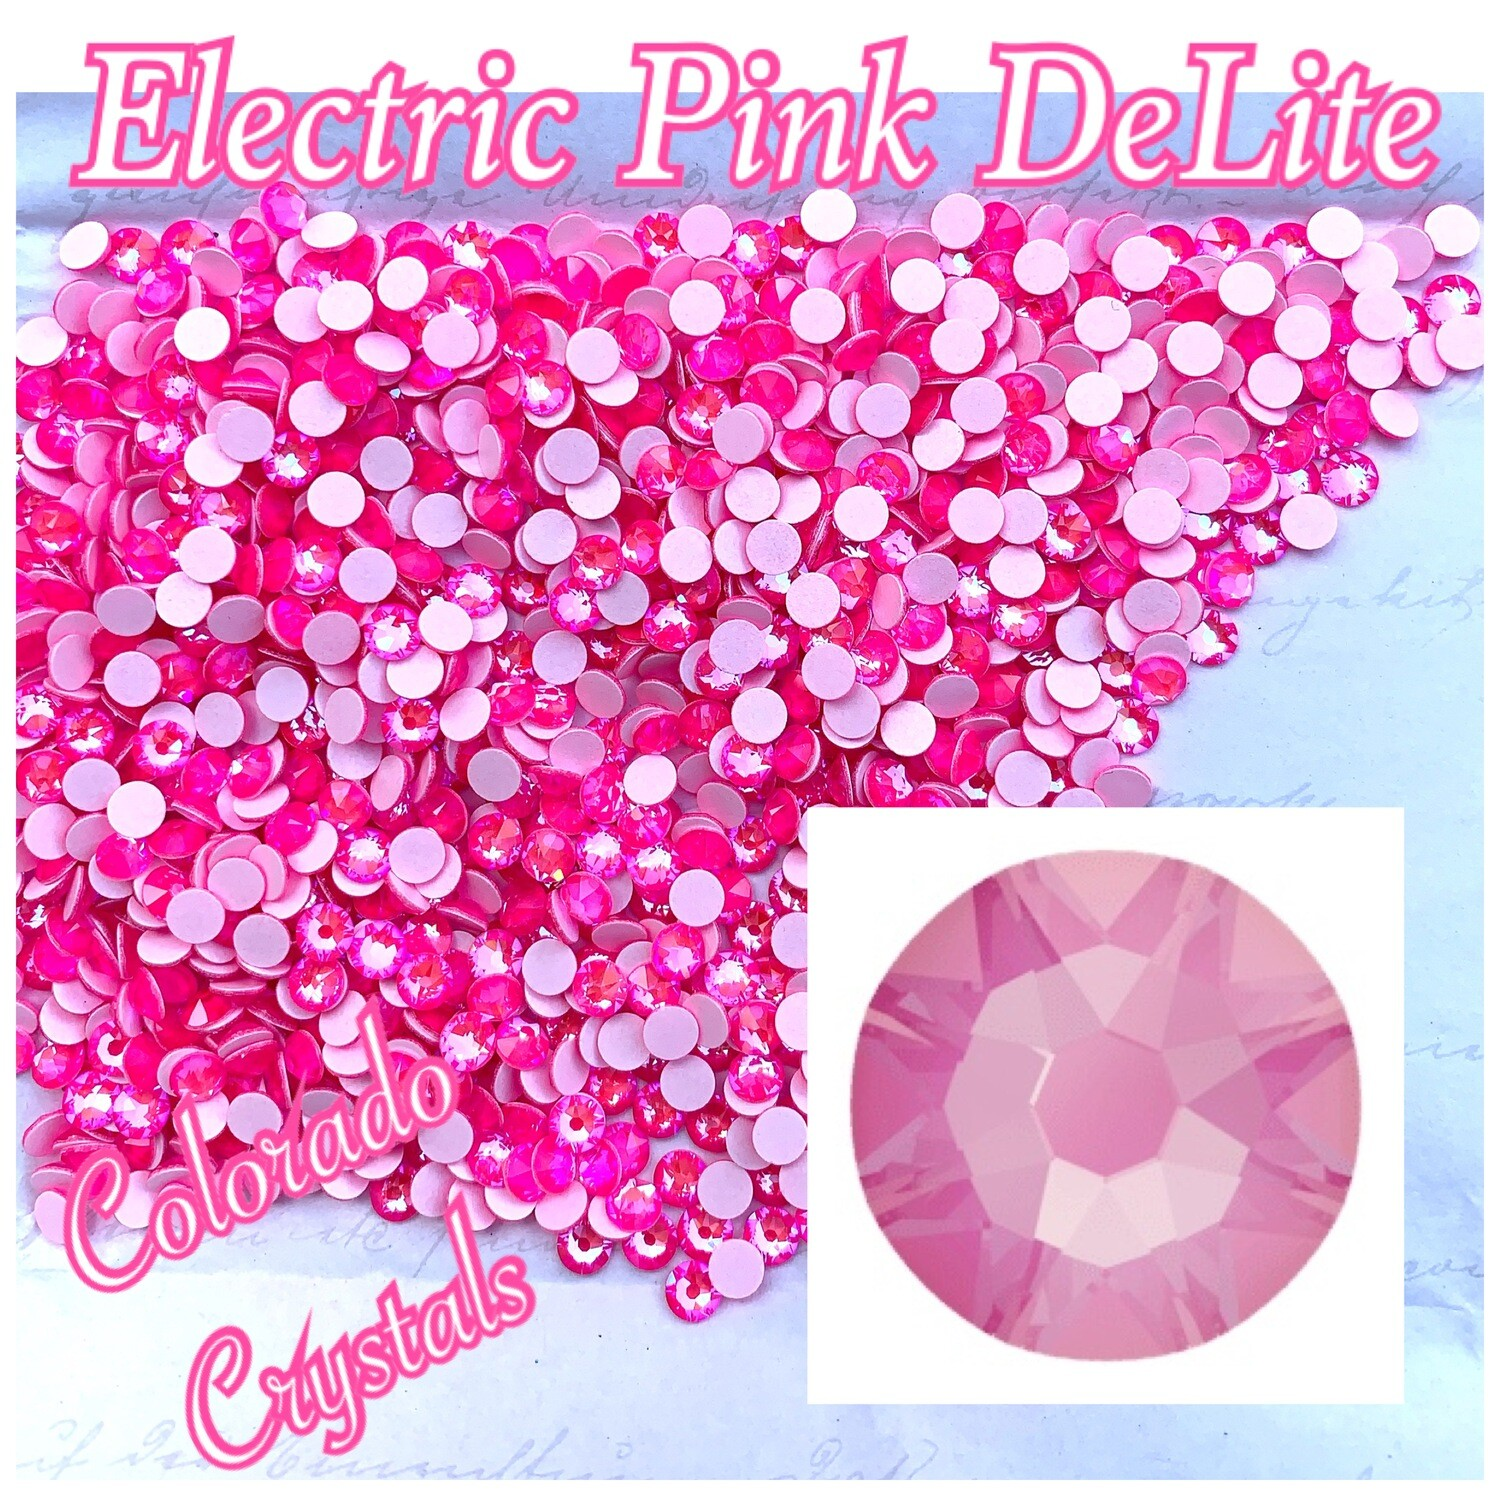 Electric Pink DeLite 16ss 2088 Limited